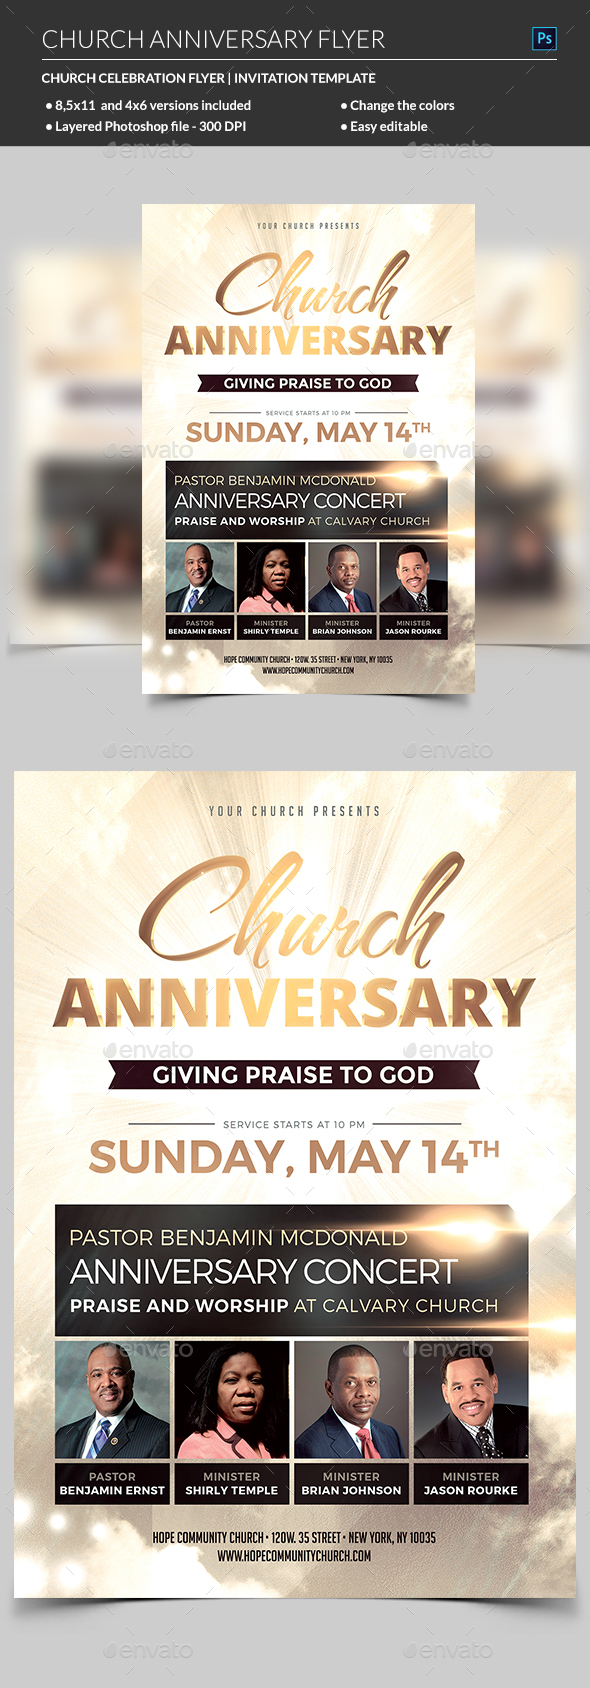 Church Anniversary Flyer by madridnyc – Anniversary Flyer